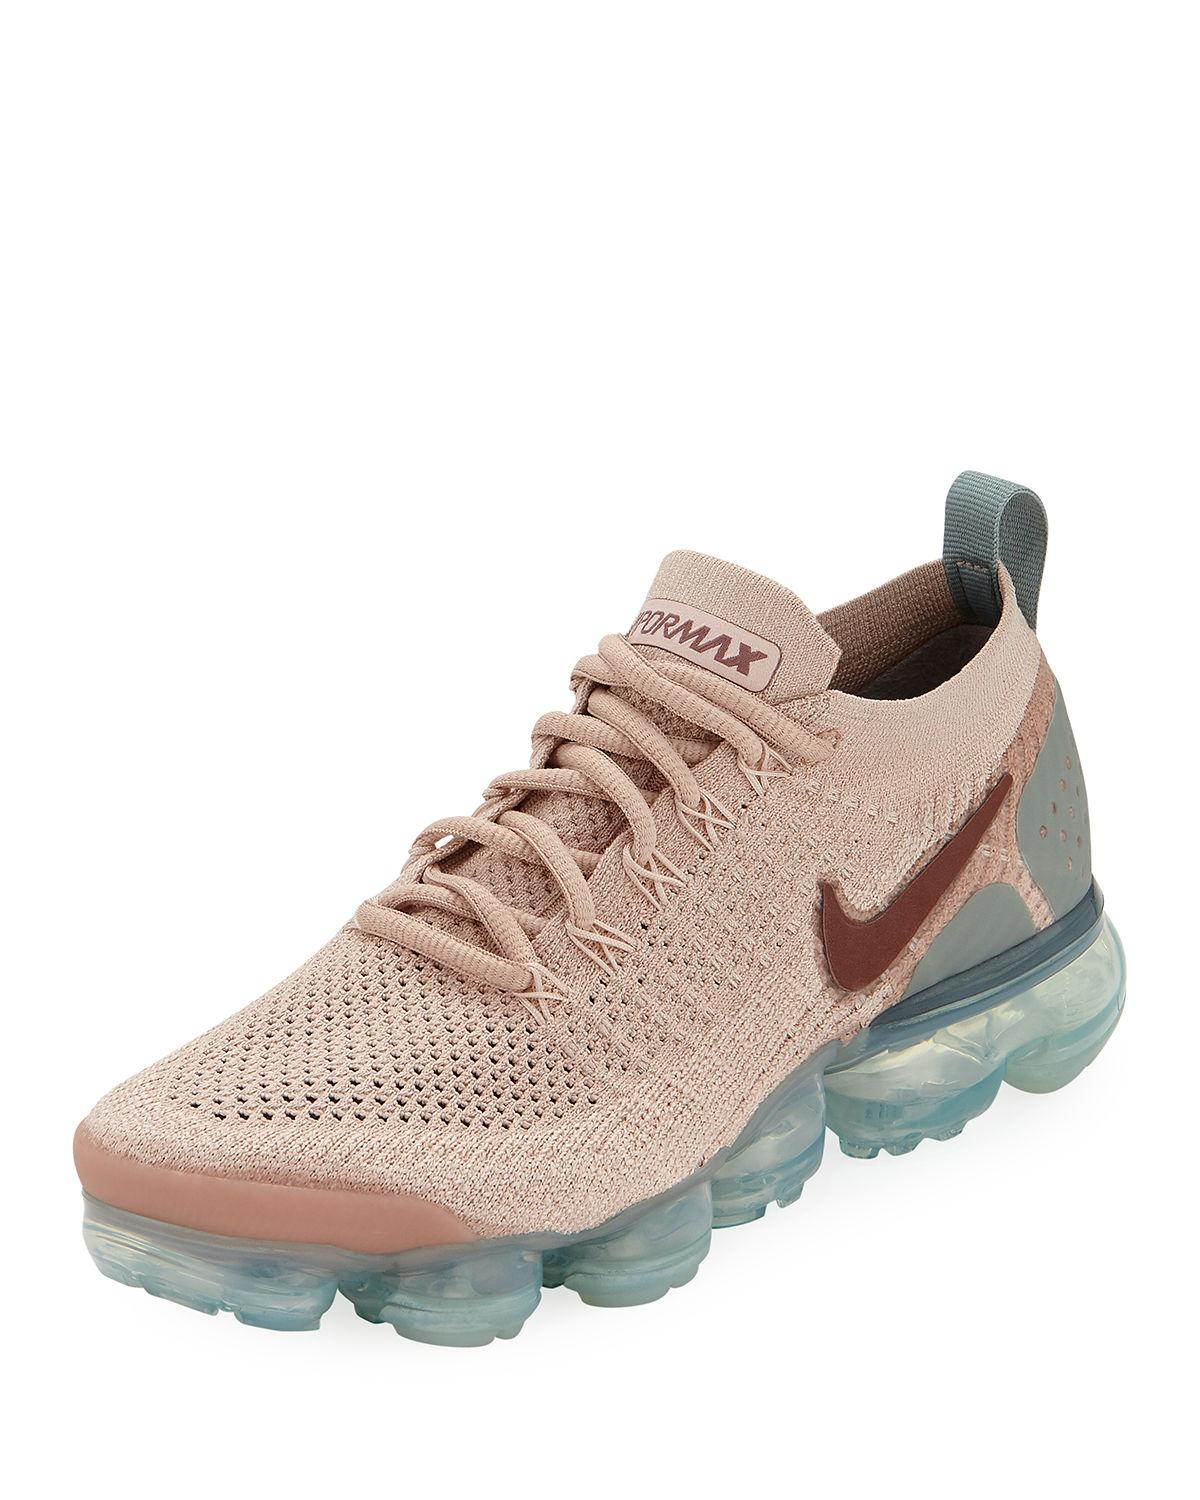 b2cda69118 Nike Women's Air Vapormax Flyknit 2 Running Shoes, Brown In Blush ...